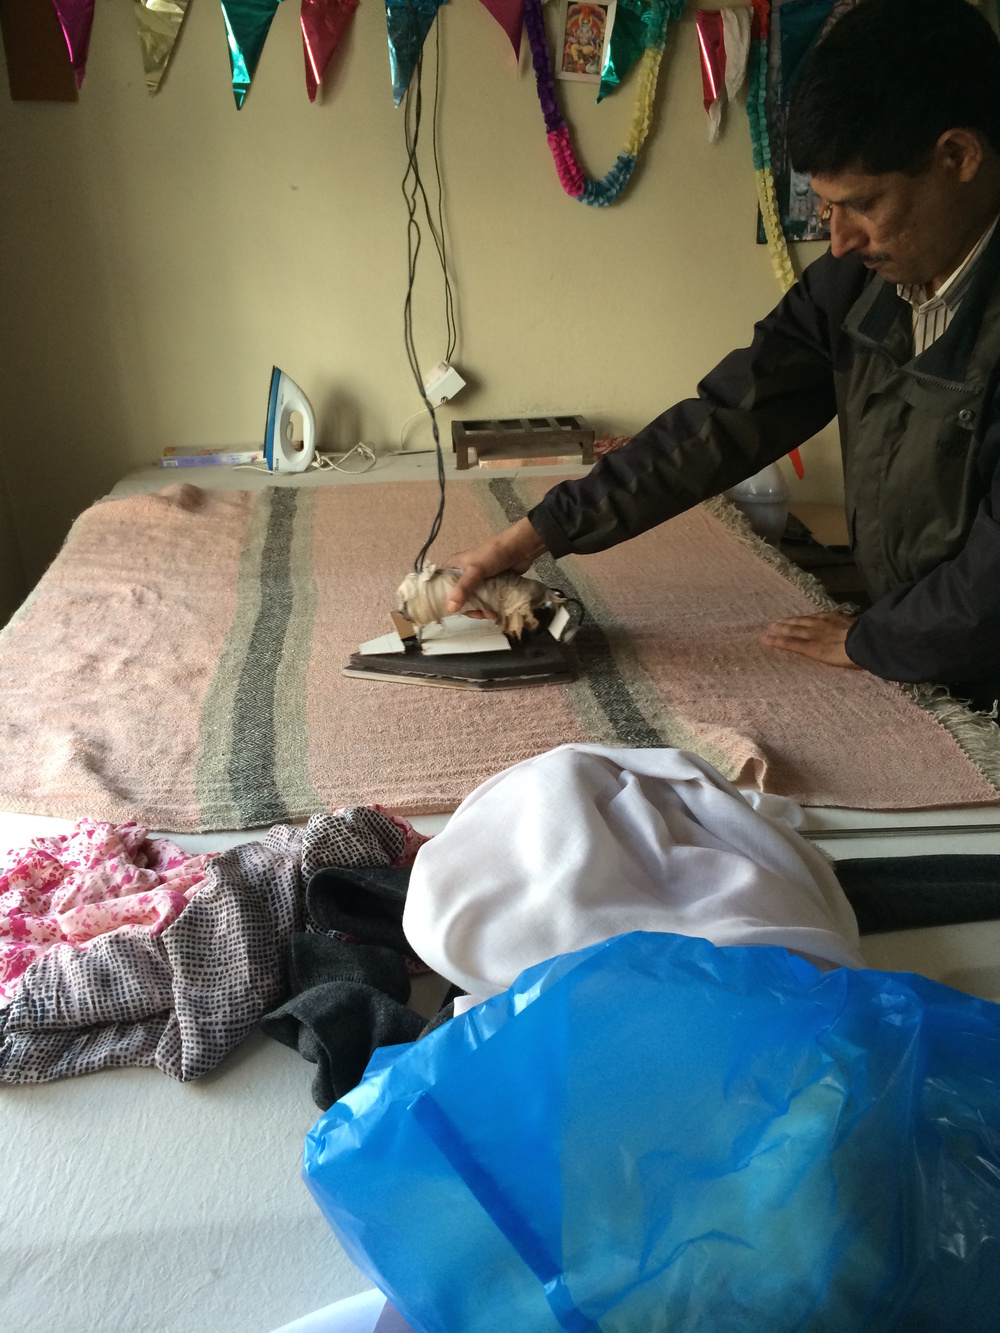 The throws are carefully ironed in Nepal before being packaged and shipped to us. Who said ironing is women's work?